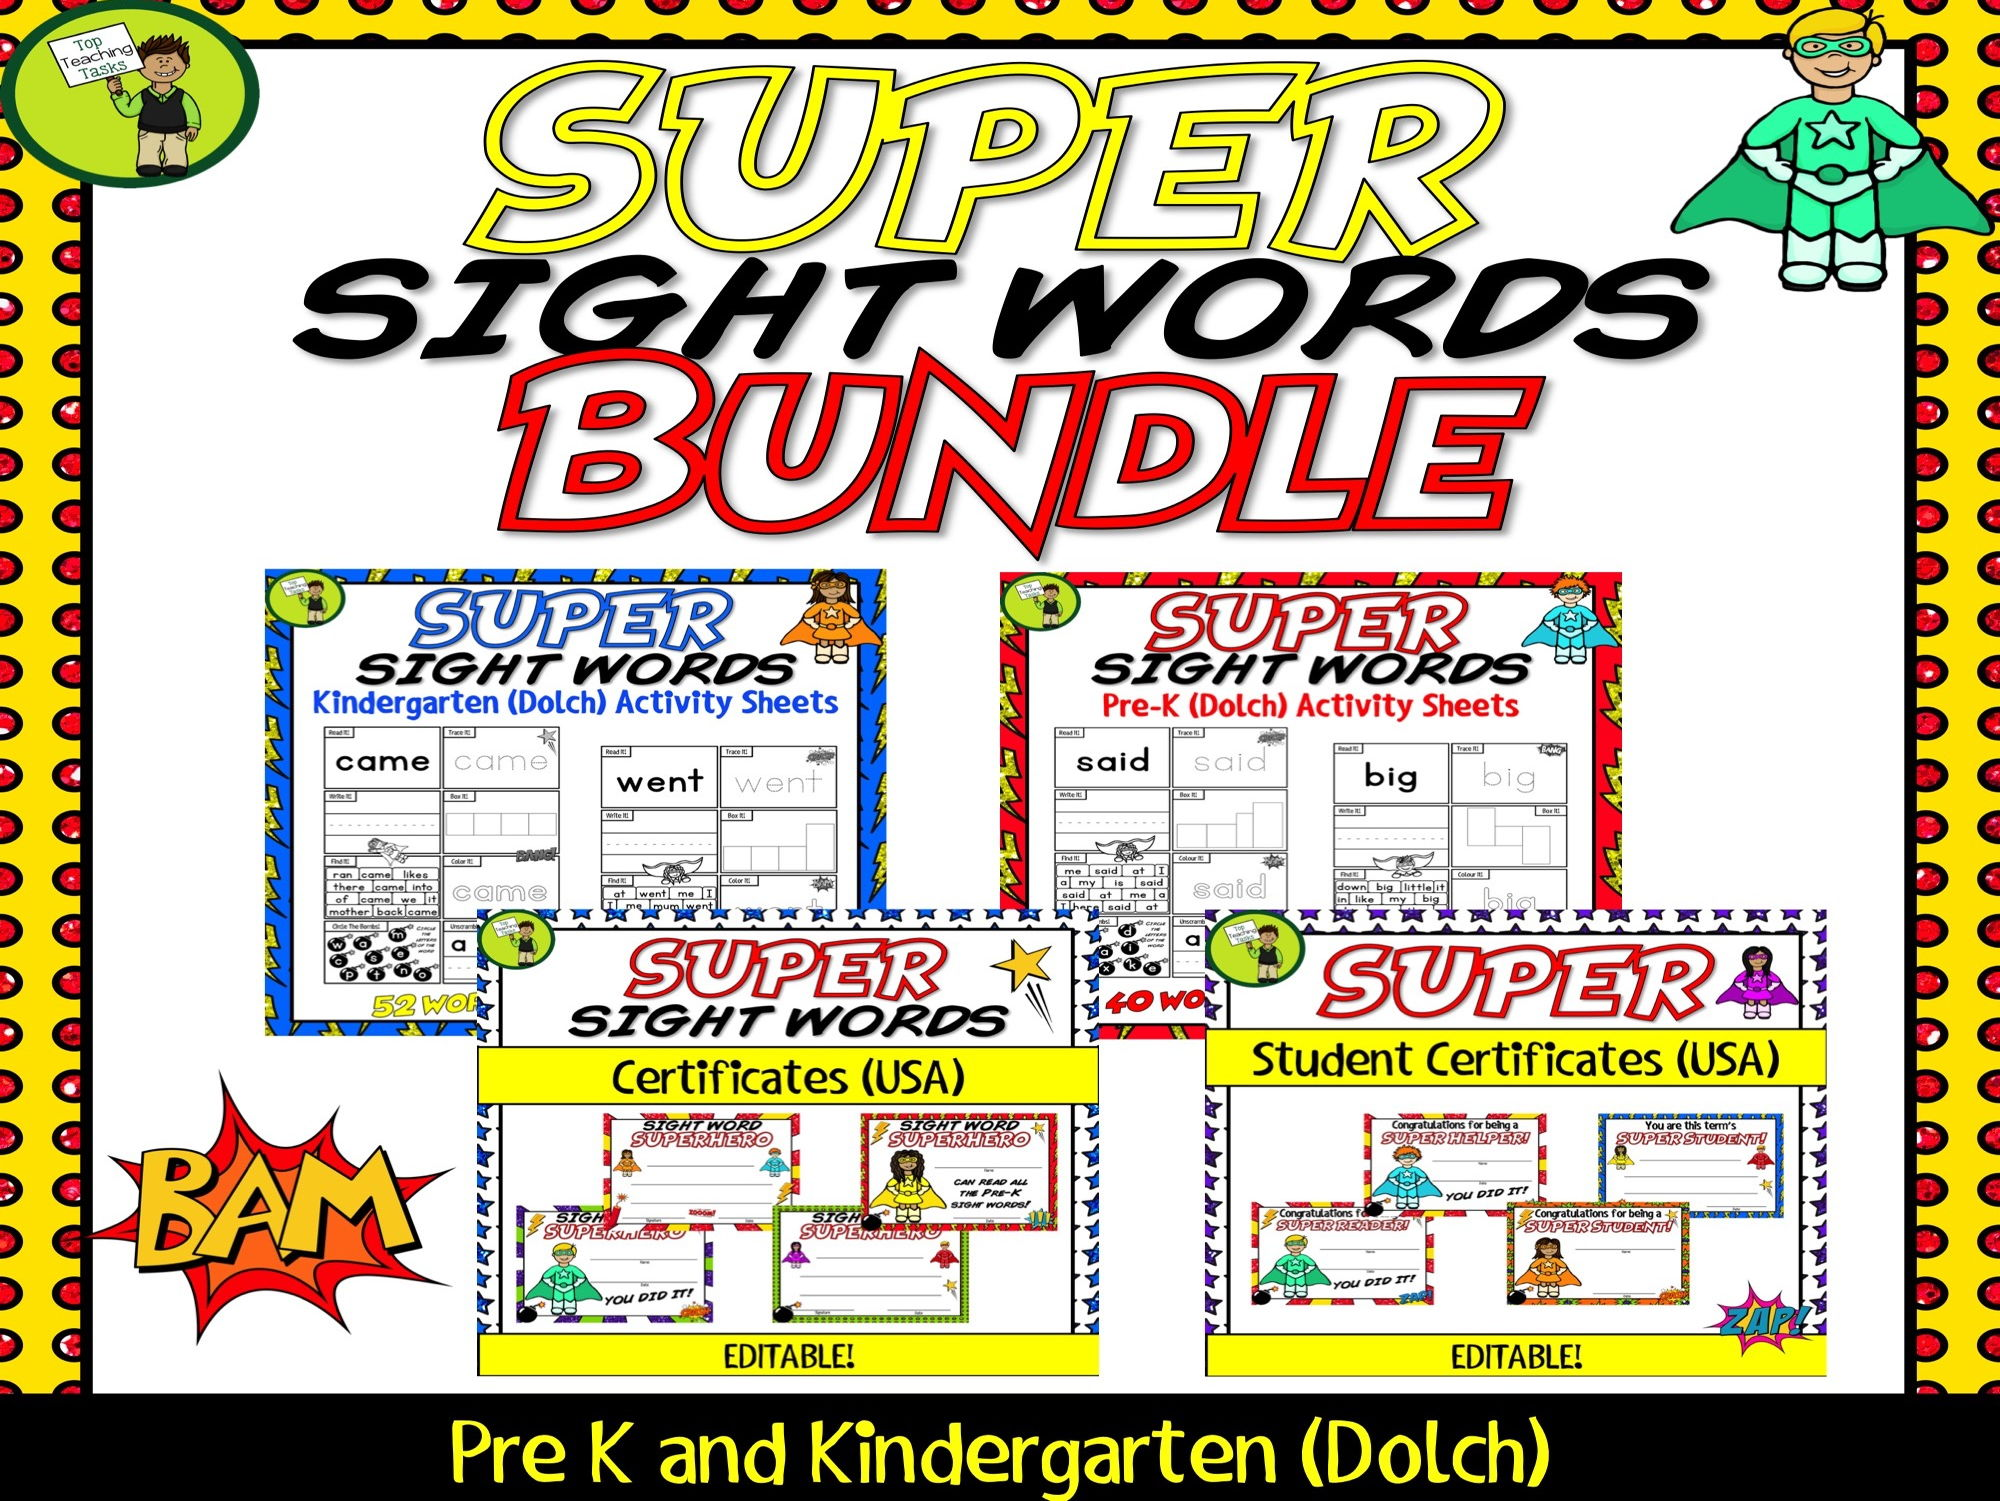 Super Sight Words Bundle (Dolch) - PreK-Kindergarten